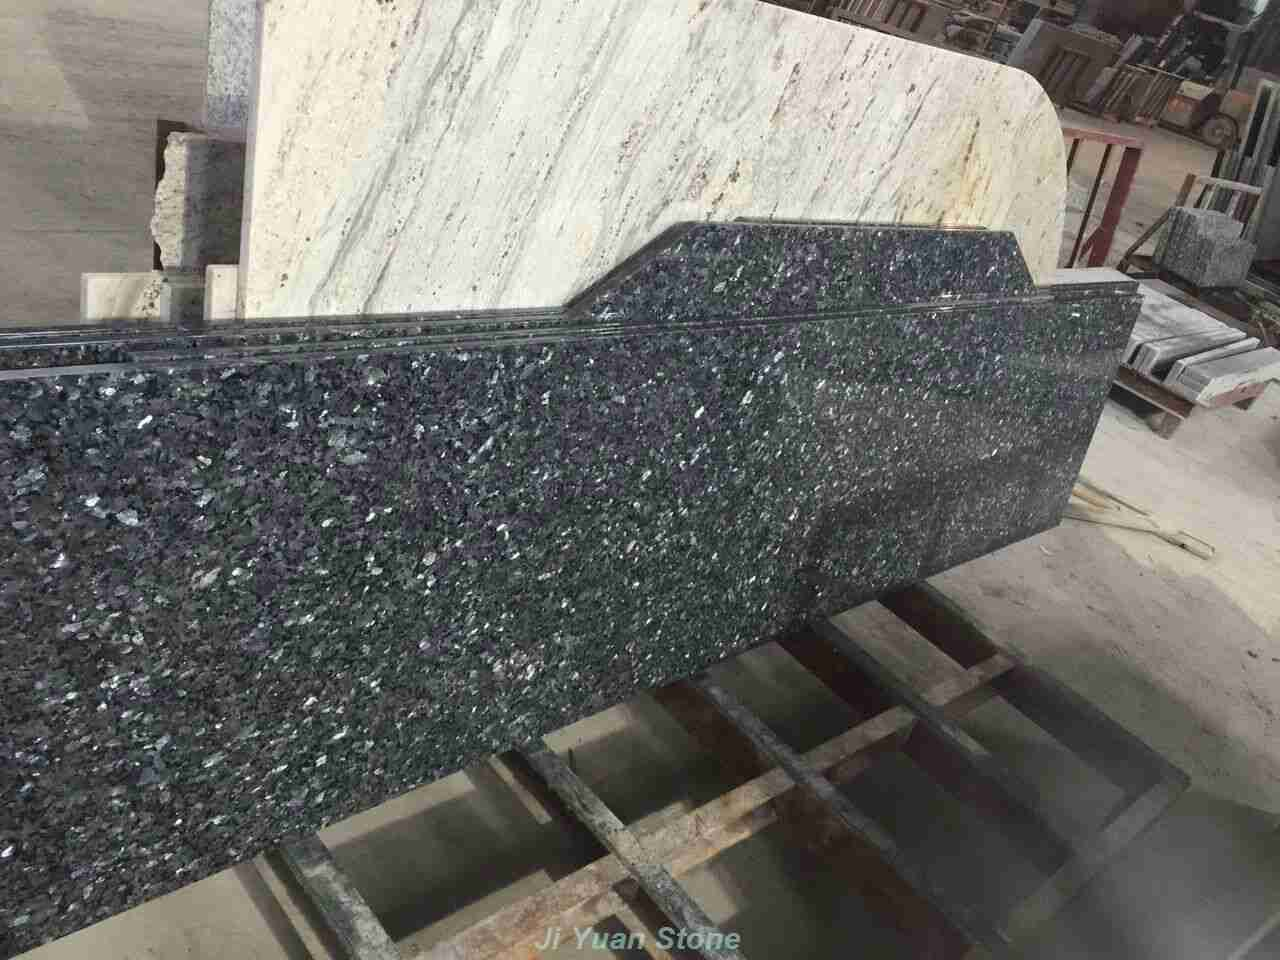 Sensa blue pearl granite,volga blue granite price,navy blue granite countertops,blue pearl silver granite,blue pearl granite bathroom countertop,blue pearl mosaic tile